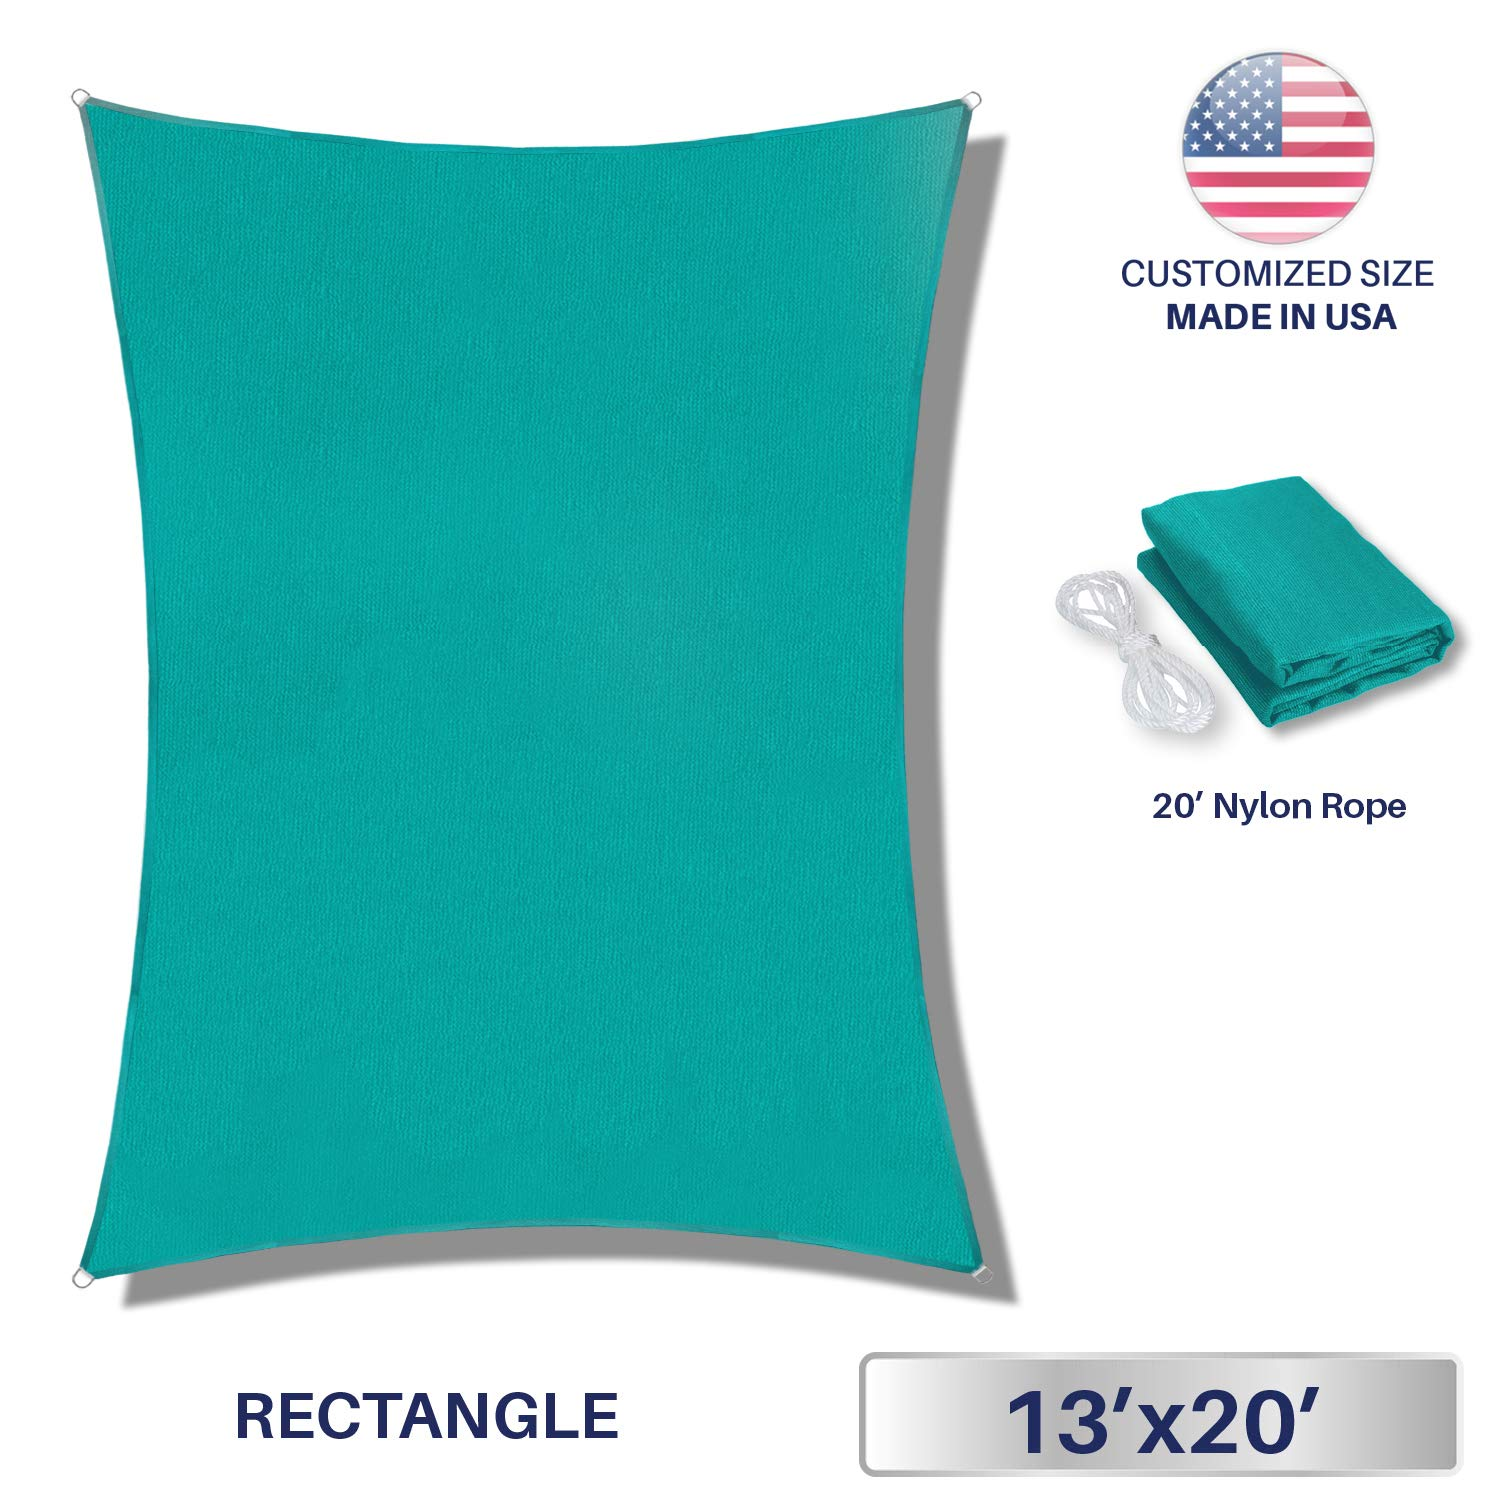 Windscreen4less 13' x 20' Rectangle Sun Shade Sail - Solid Turquoise Durable UV Shelter Canopy for Patio Outdoor Backyard - Custom